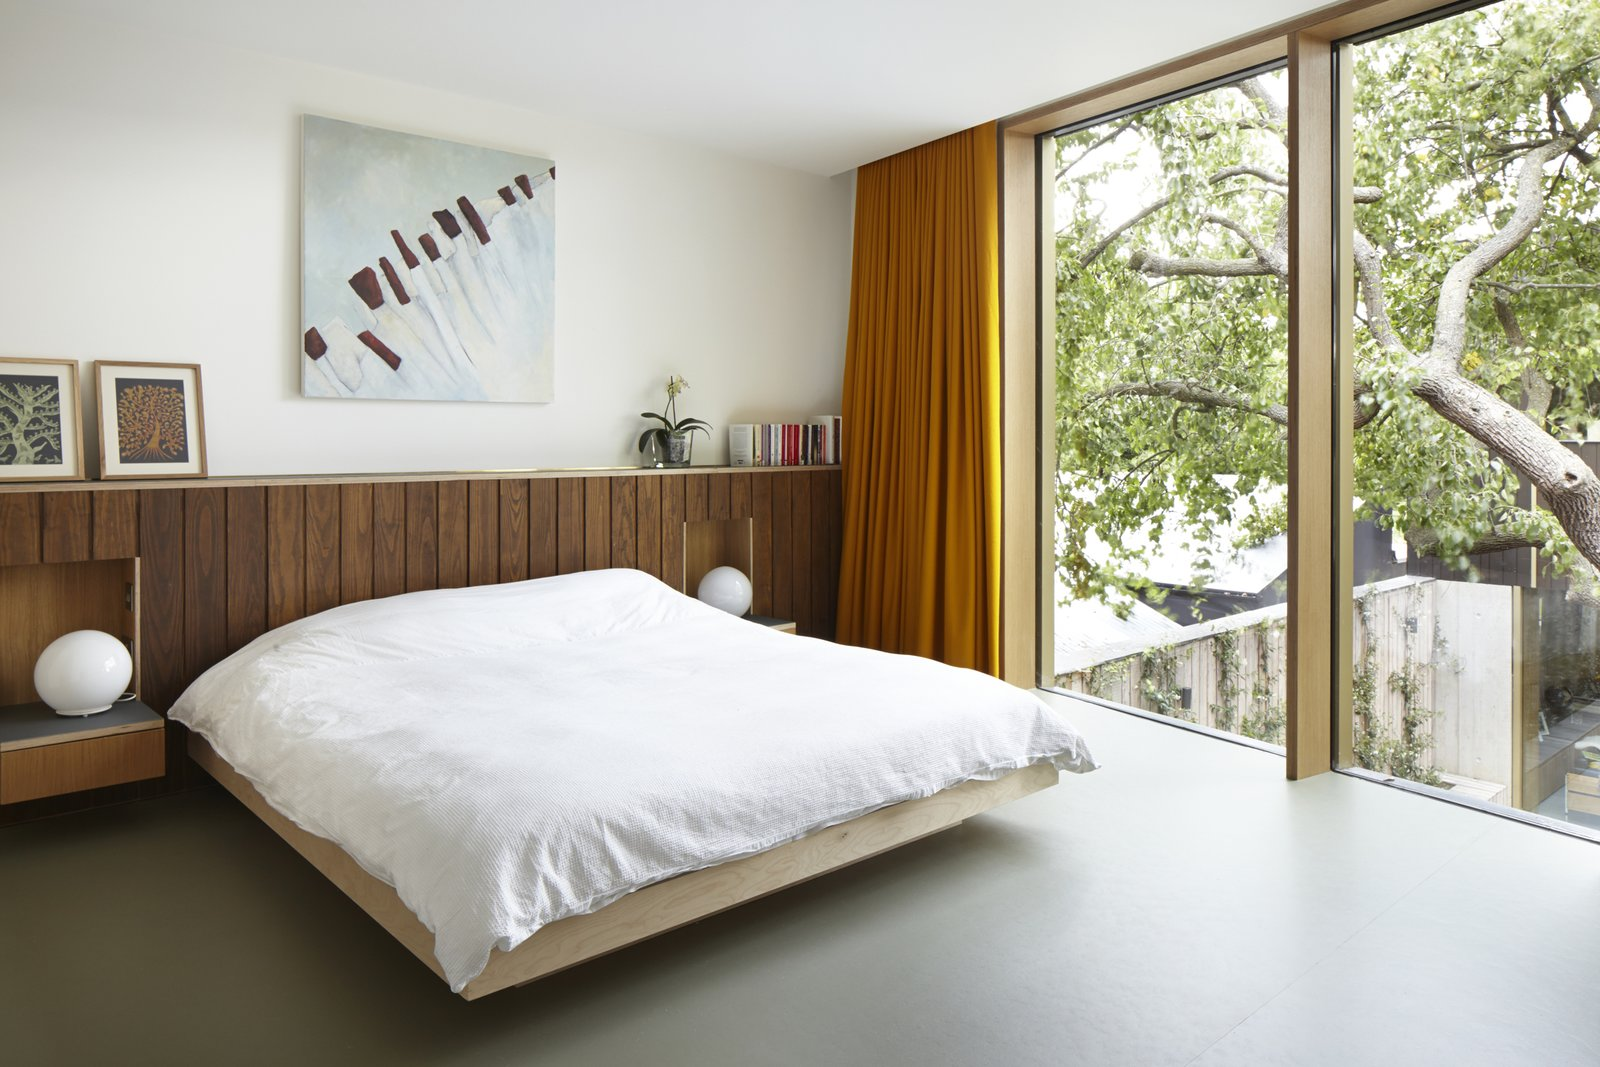 Edgley Design designed the beds and headboards in the bedrooms. Just one of the several bespoke details that the firm included in the home.  Photo 9 of 9 in This Modern Courtyard Home Celebrates a 100-Year-Old Tree